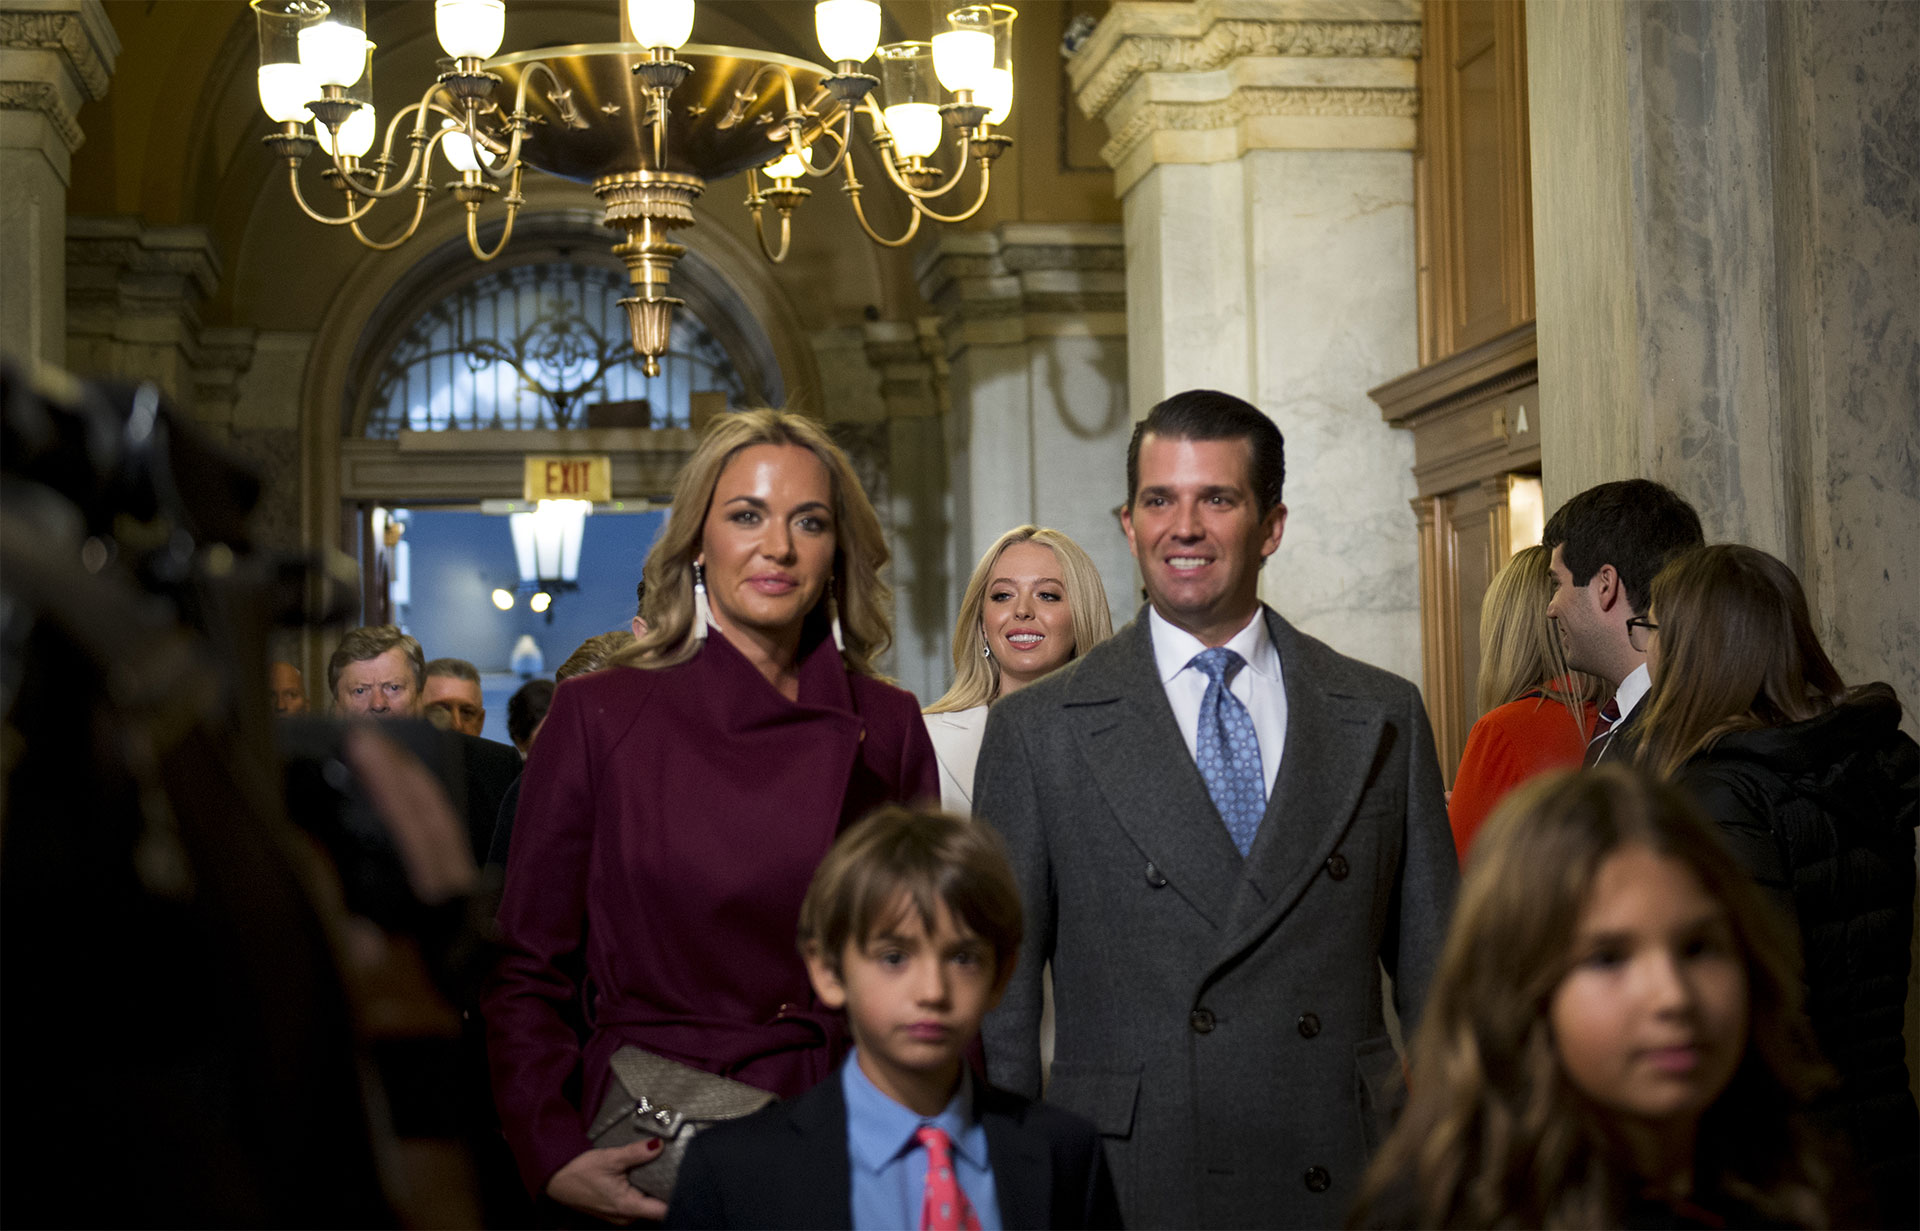 Donald Trump Jr. and Wife Vanessa Allegedly Head for Divorce